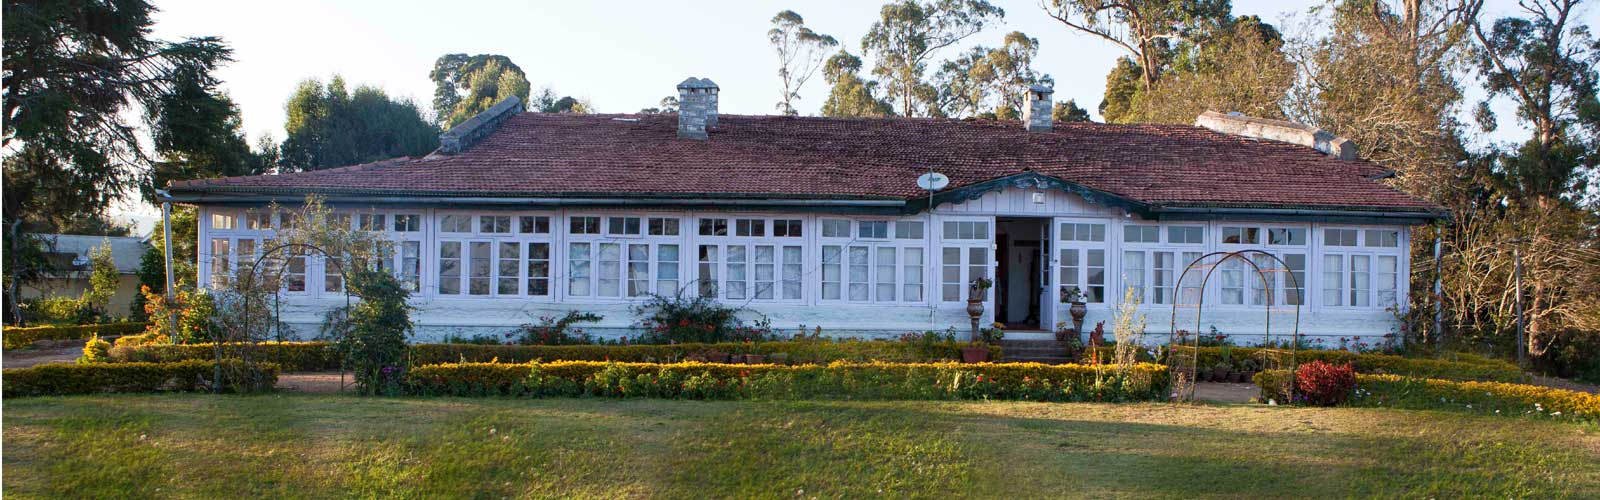 Home Stay in Kodaikanal